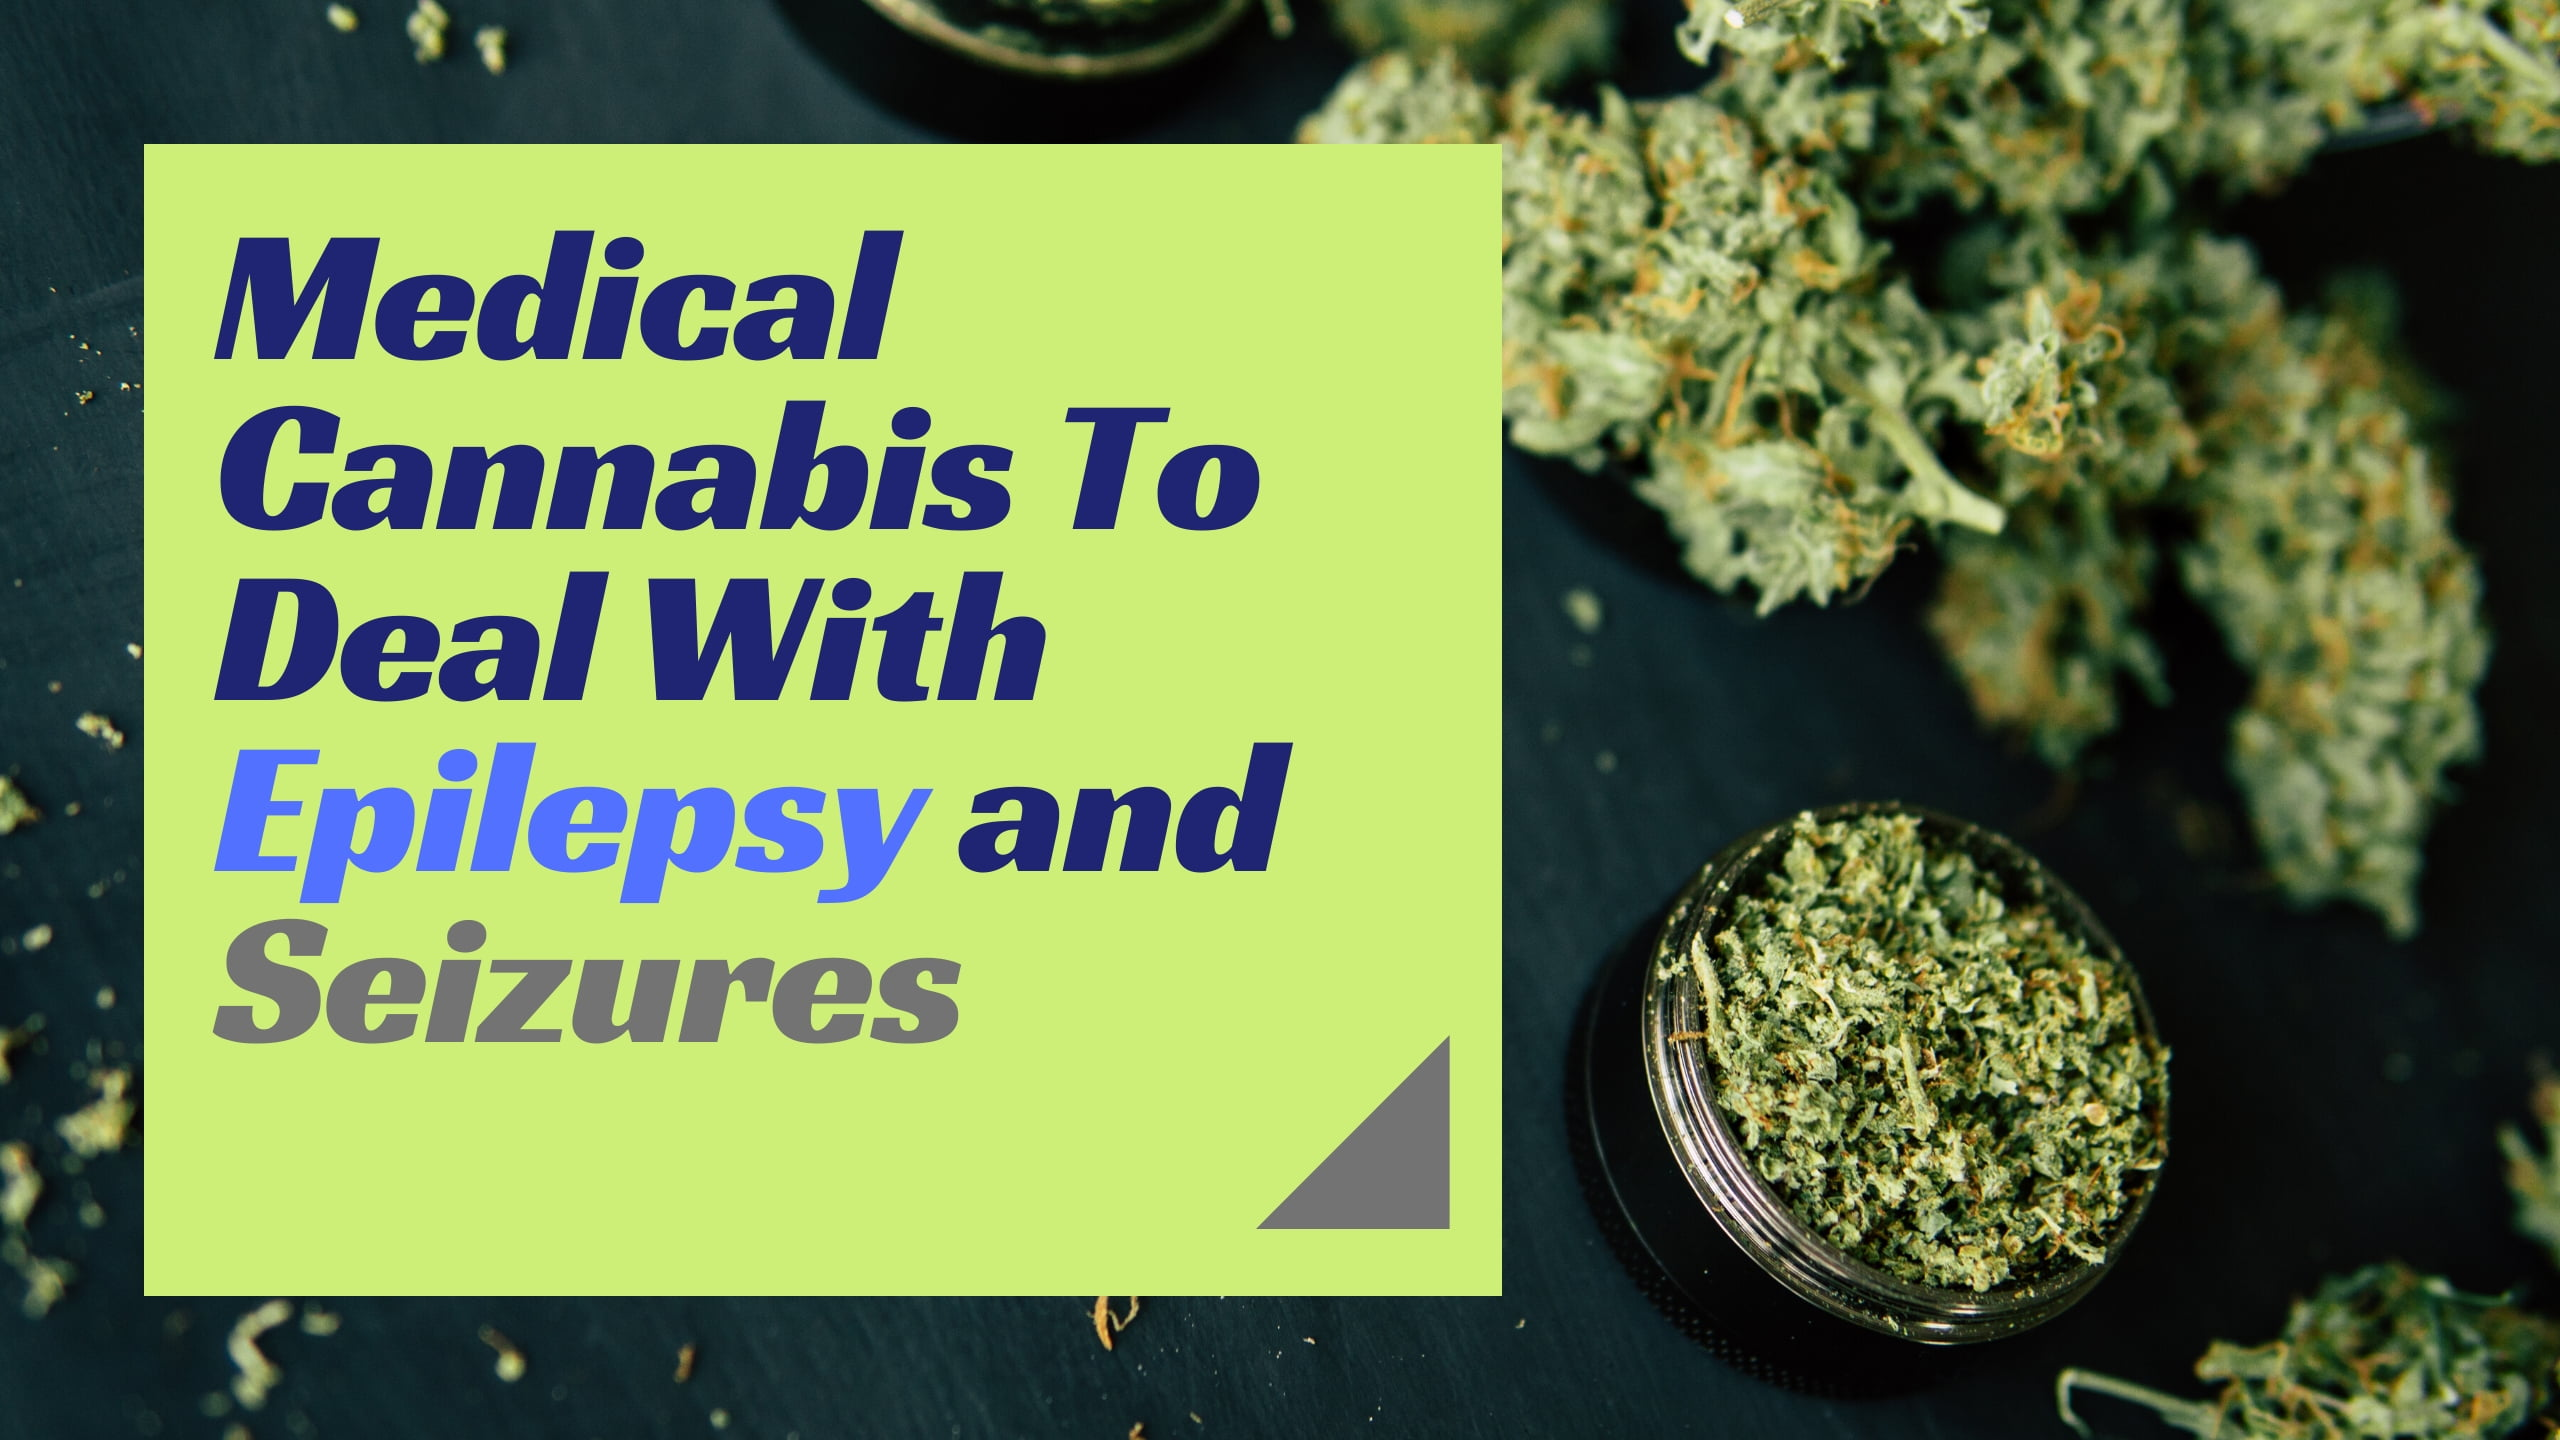 CBD, Marijuana And Epilepsy: Medical Cannabis To Deal With Epilepsy and Seizures